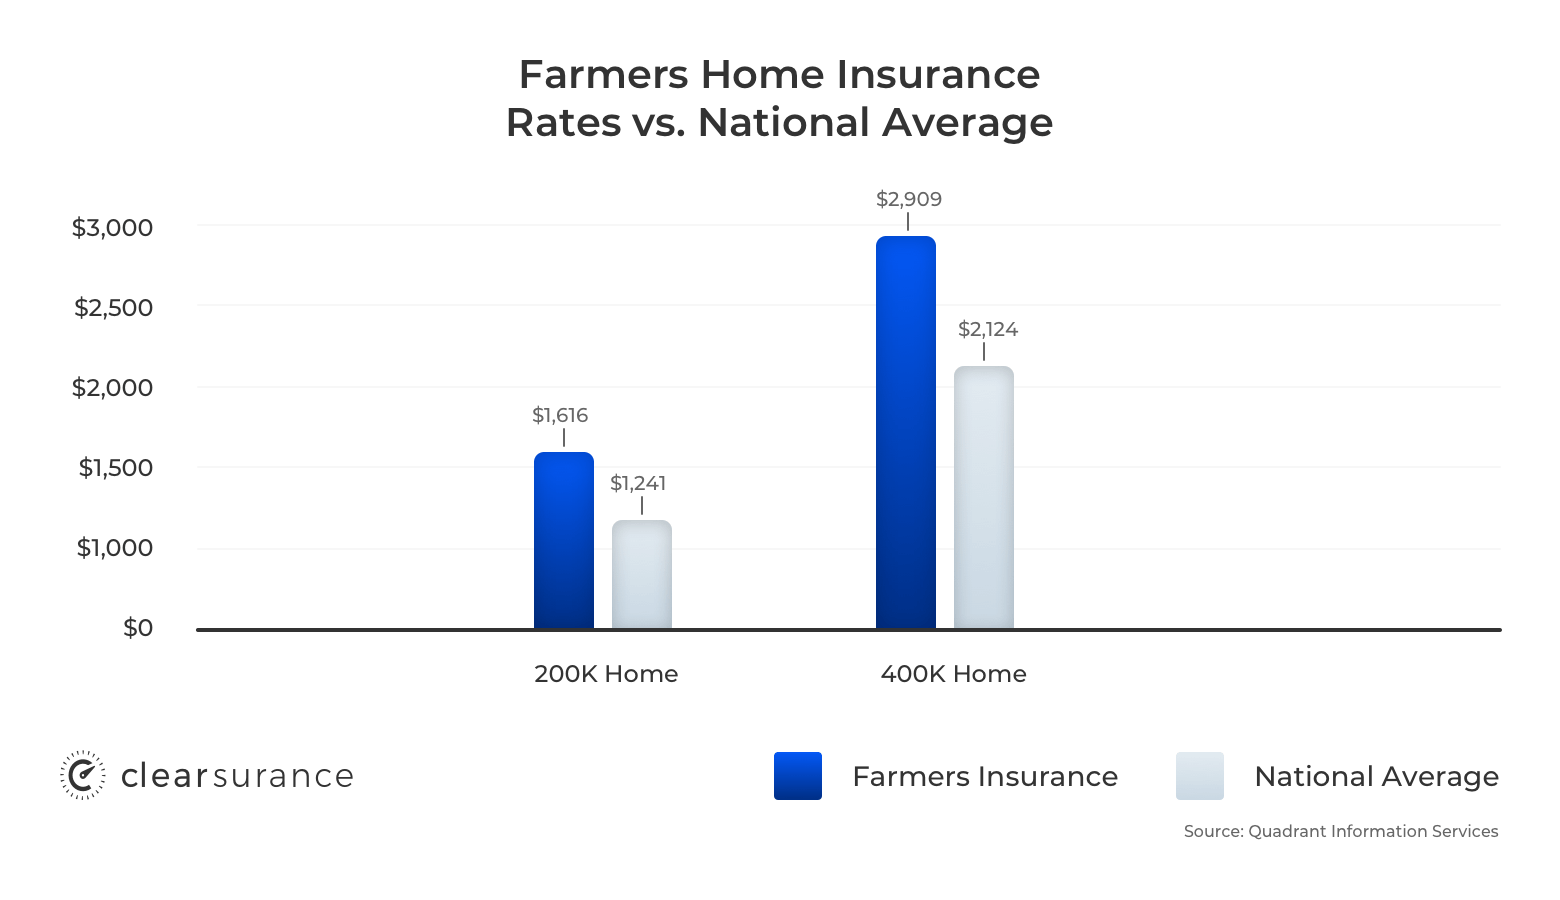 Farmers home insurance rates